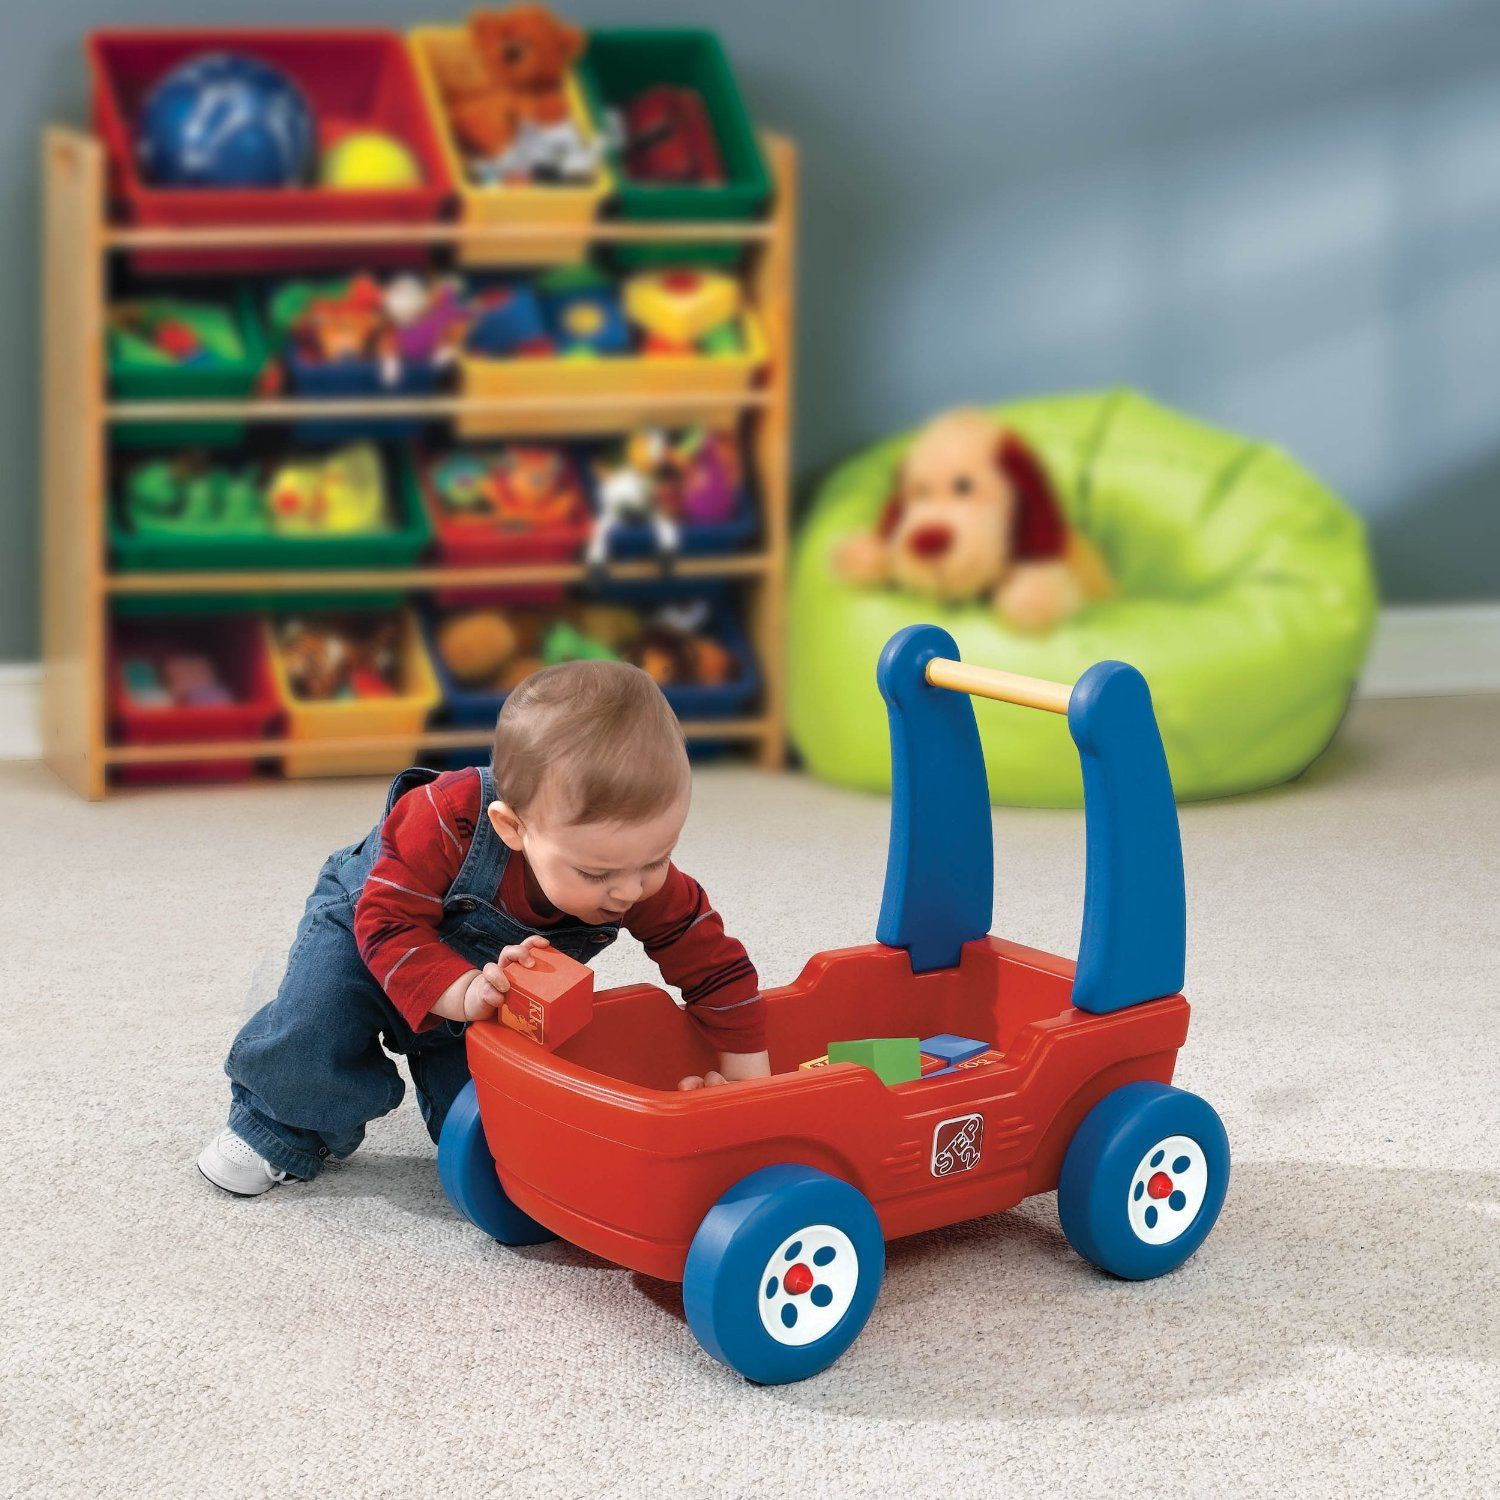 Best ideas about Gift Ideas For Baby Boy 1 Year Old . Save or Pin Best rated bud friendly t ideas for one year old Now.